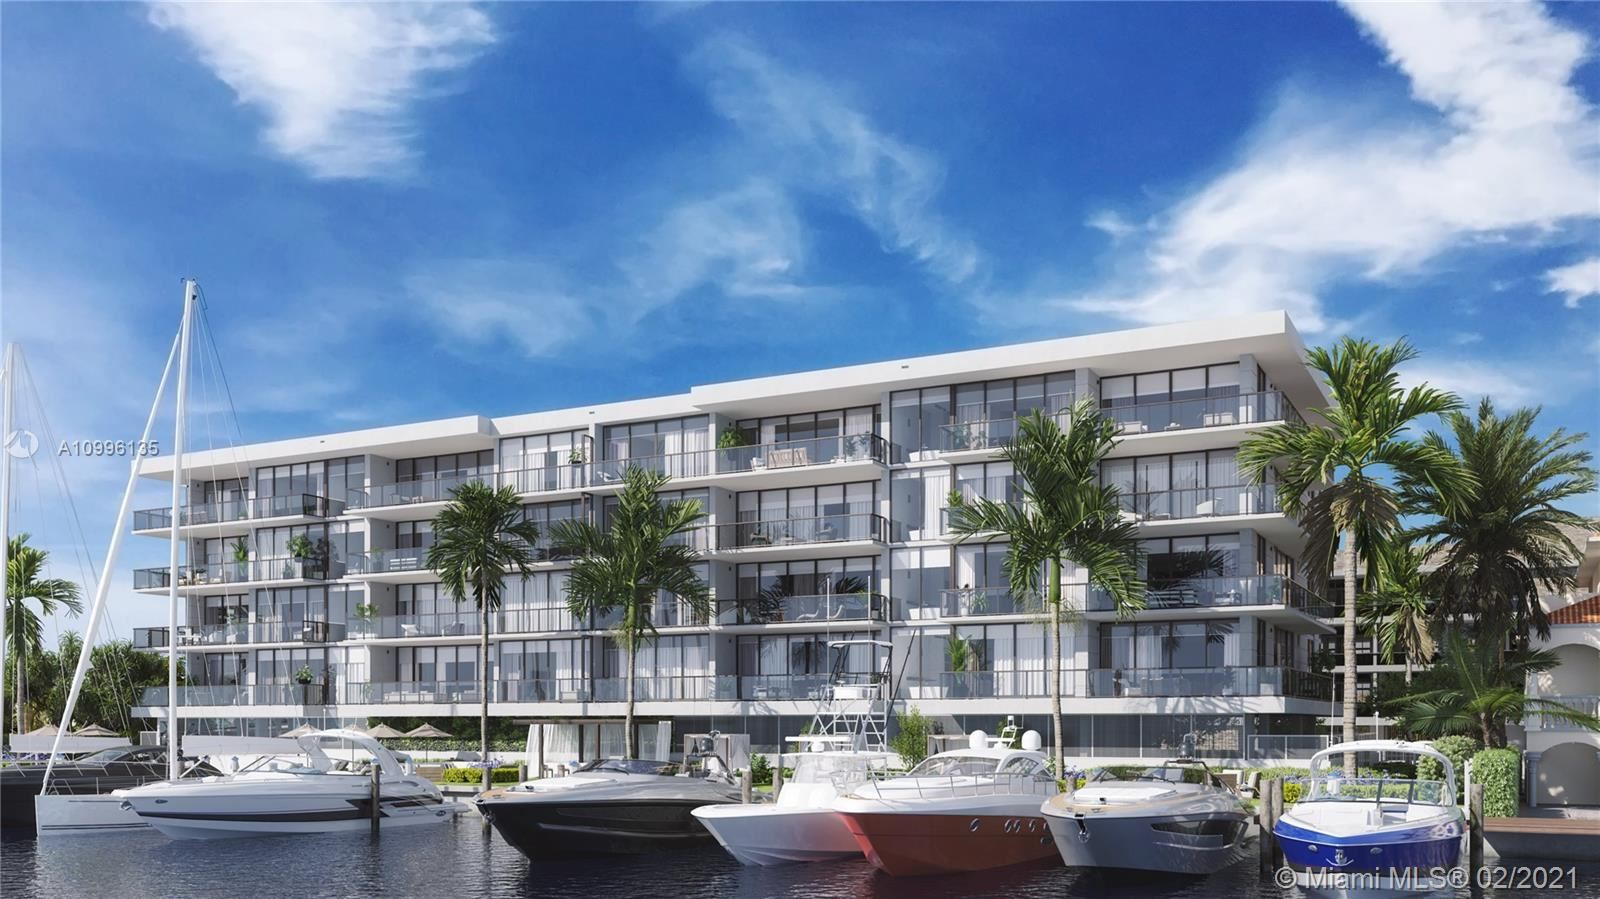 160 Isle Of Venice Dr. #201, Fort Lauderdale, FL 33301 - #: A10996135